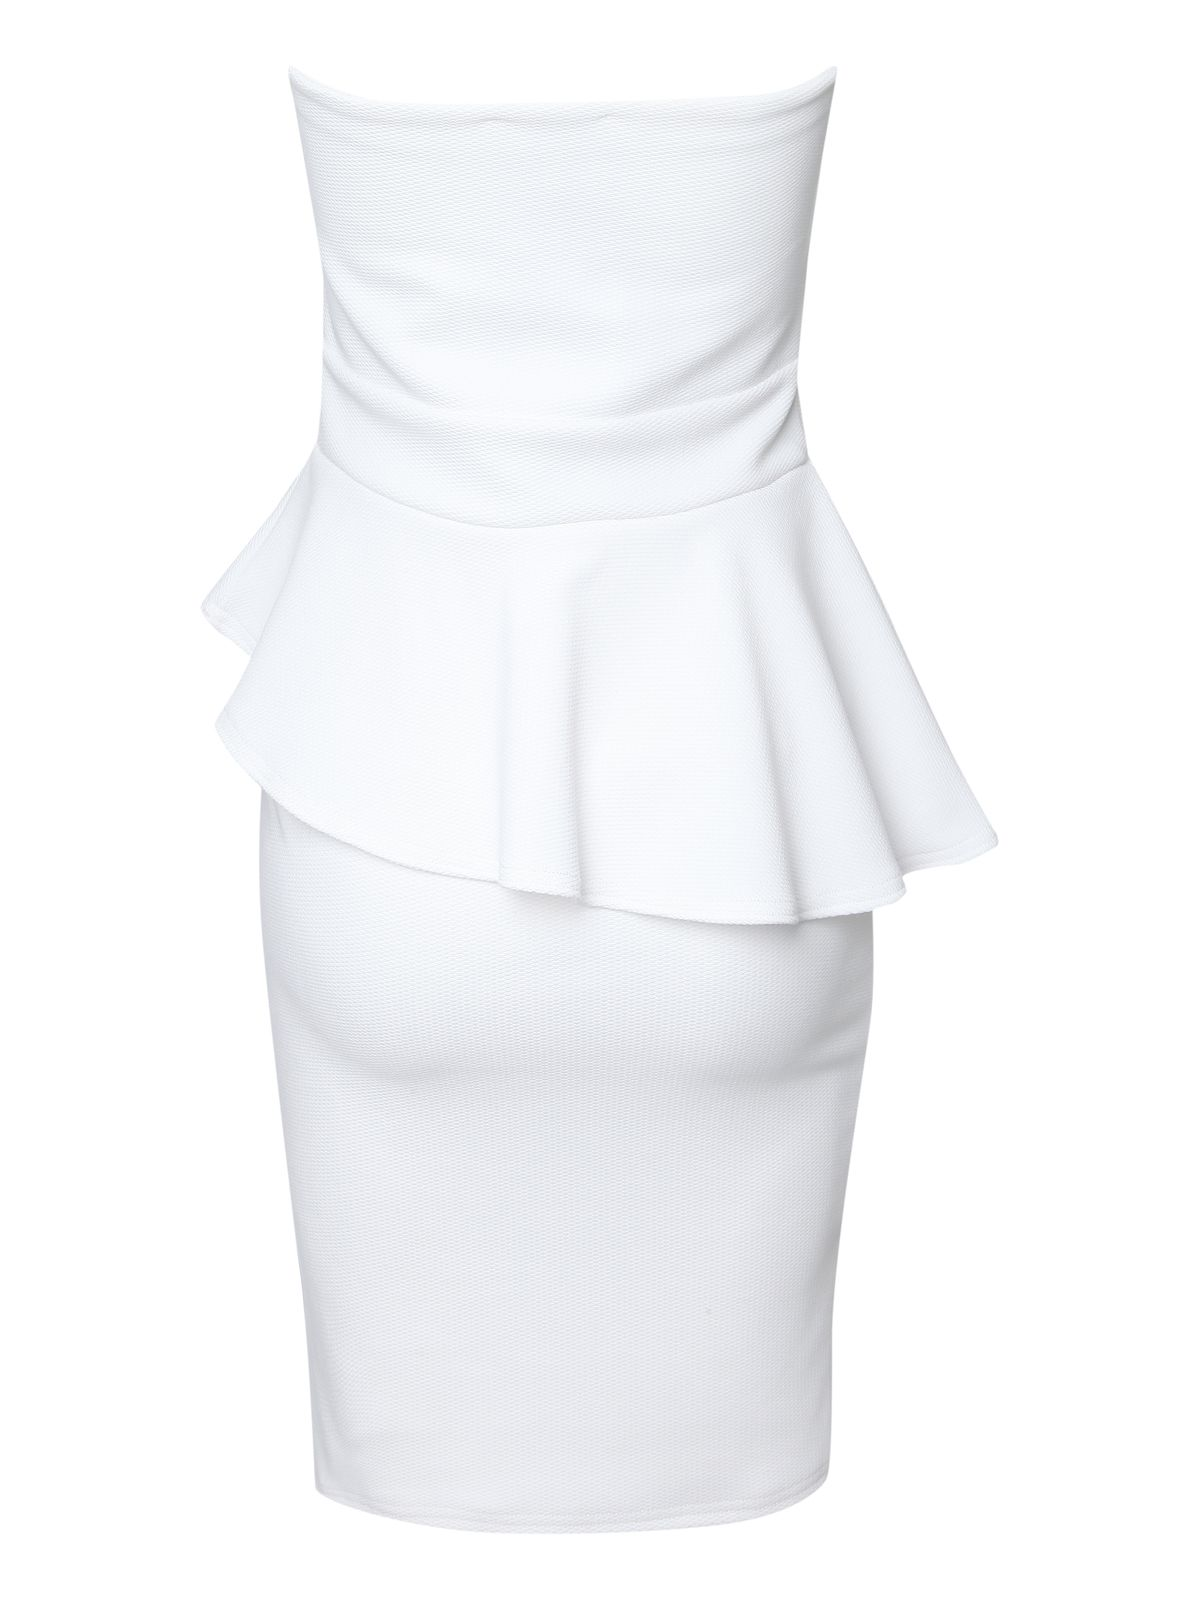 Asymmetric strapless peplum dress